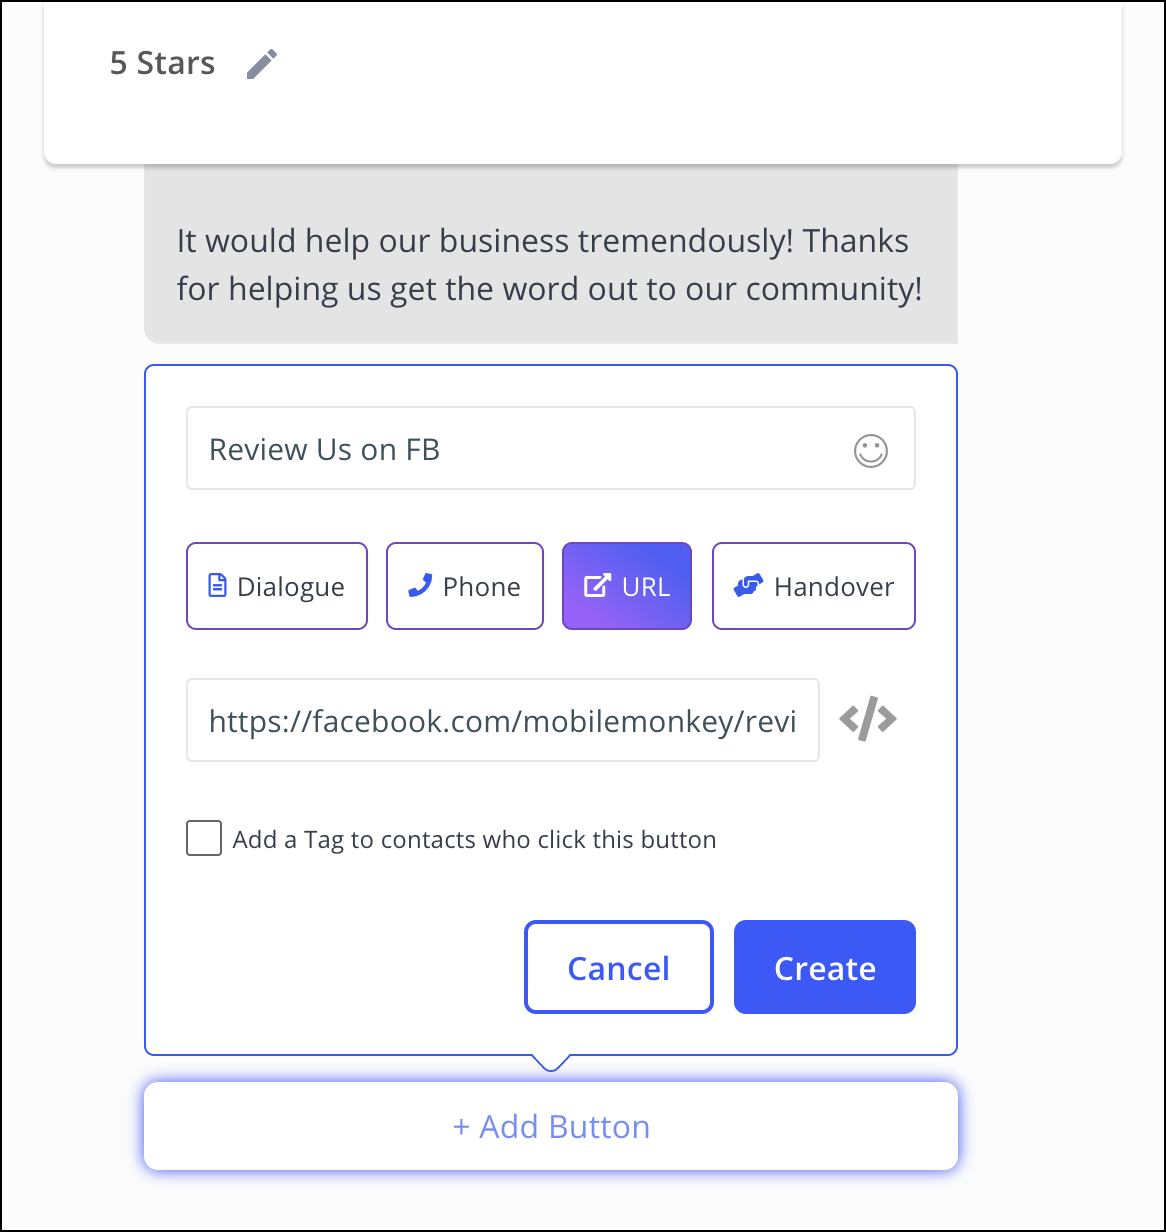 add the button that links to reviews on facebook